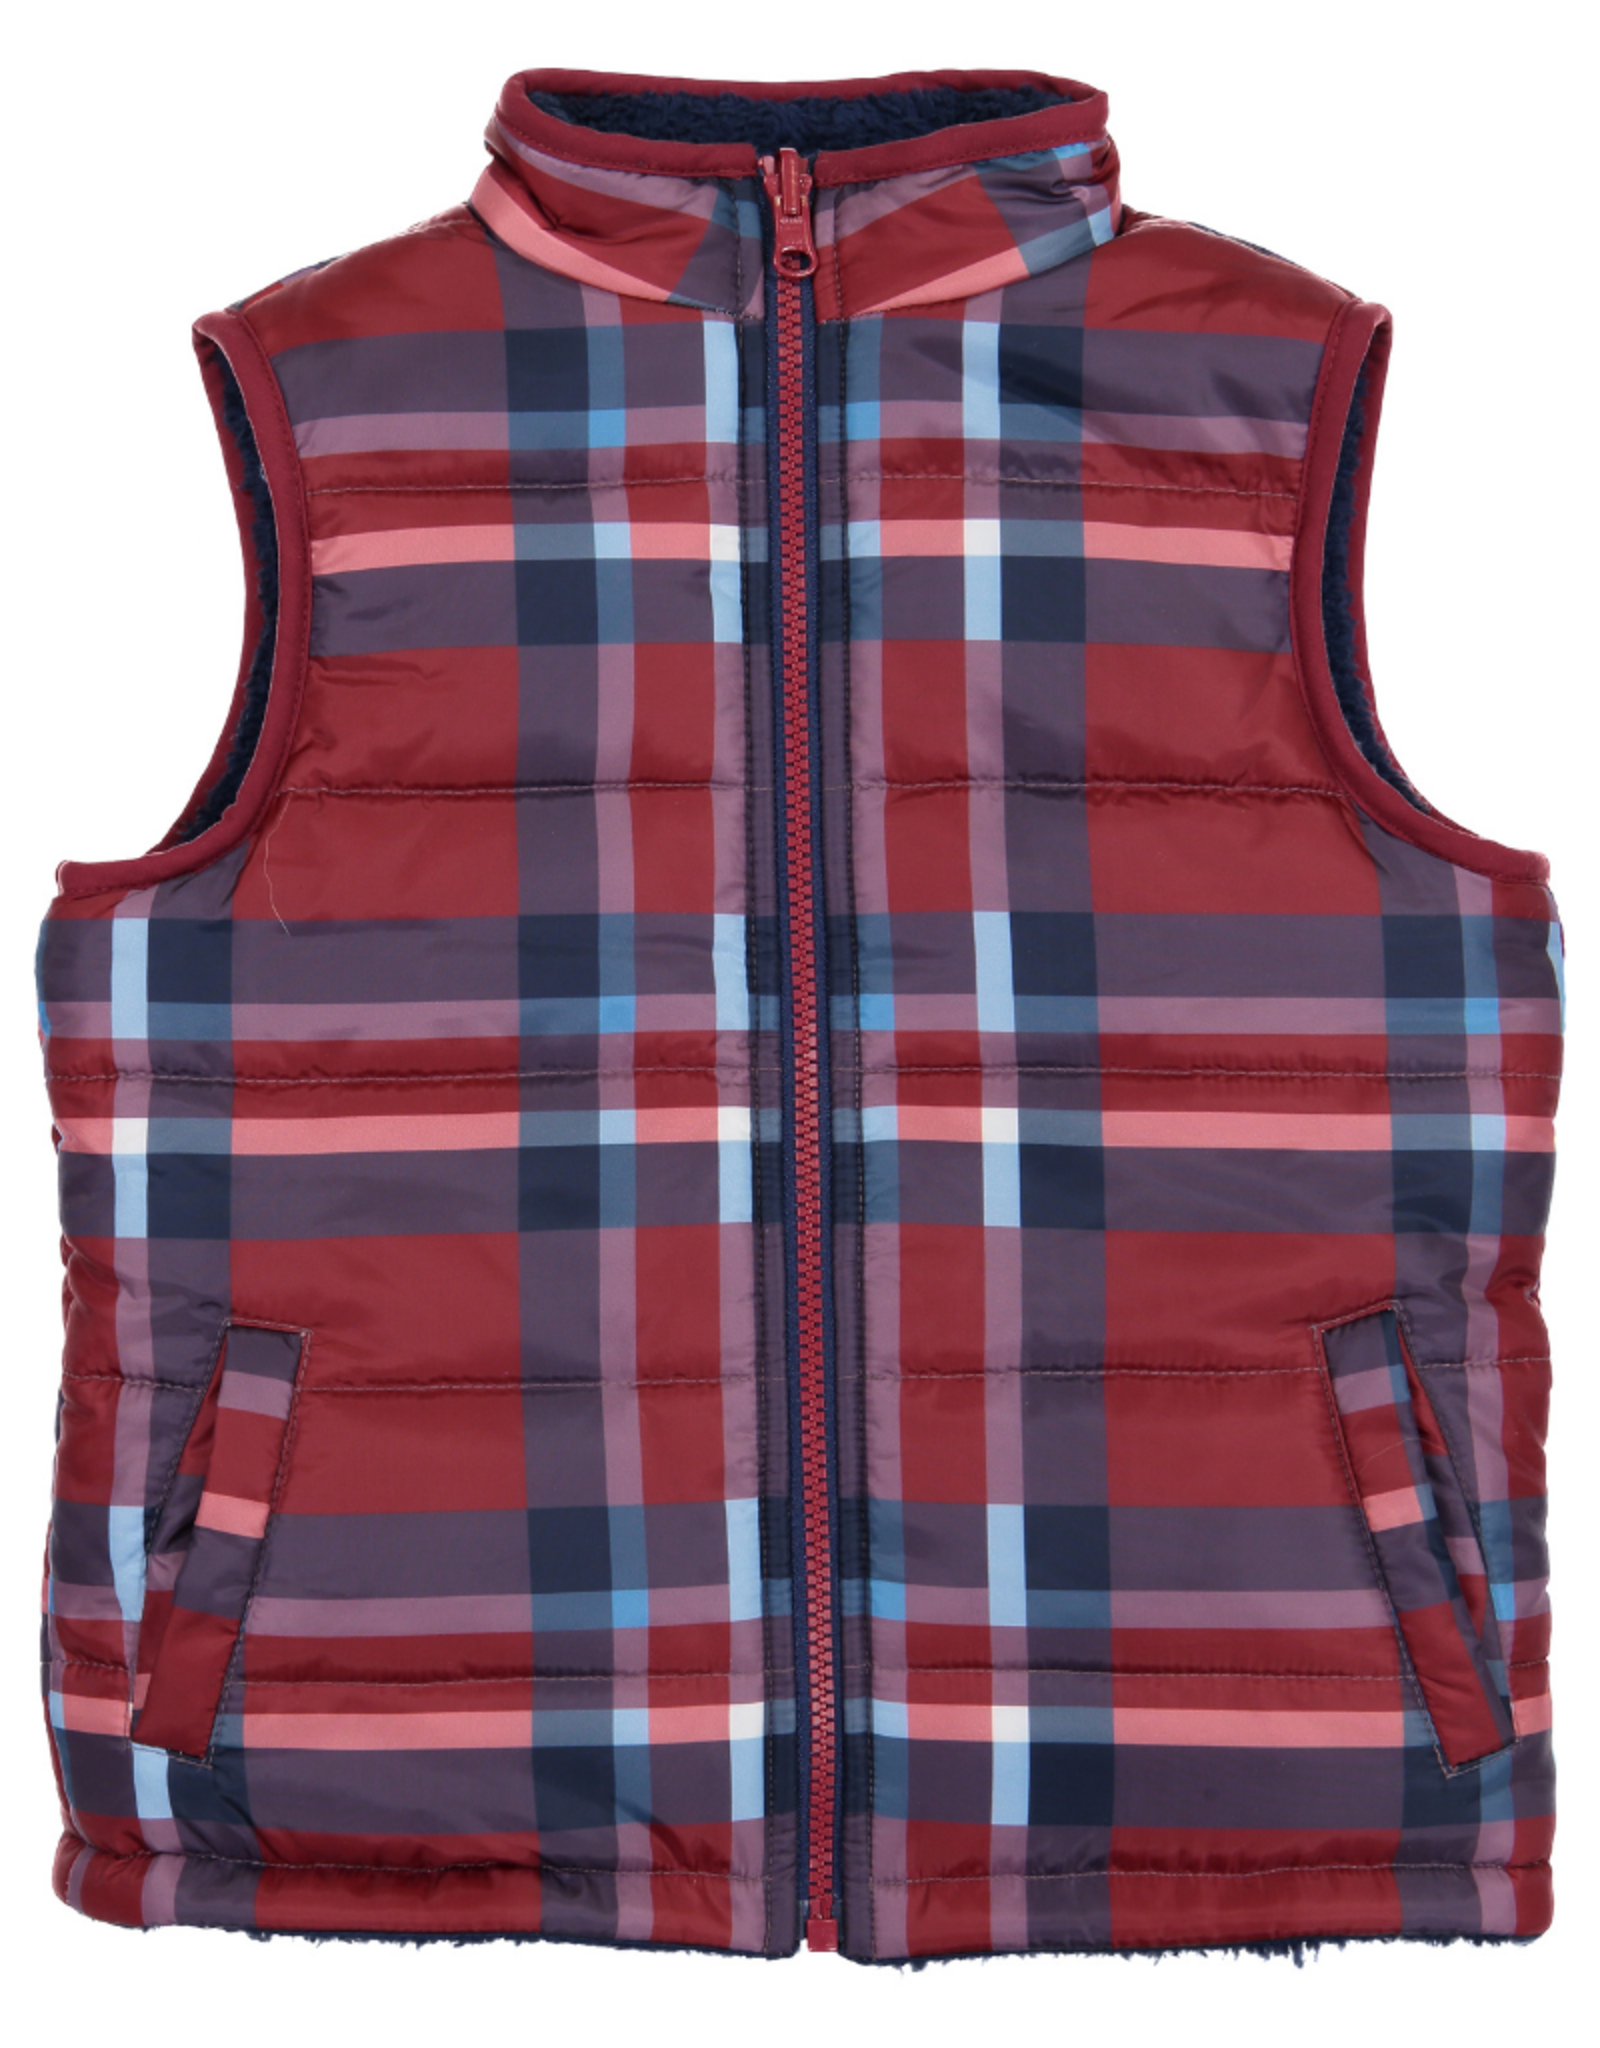 Andy & Evan Andy & Evan Reversible Fleece Puffer Vest